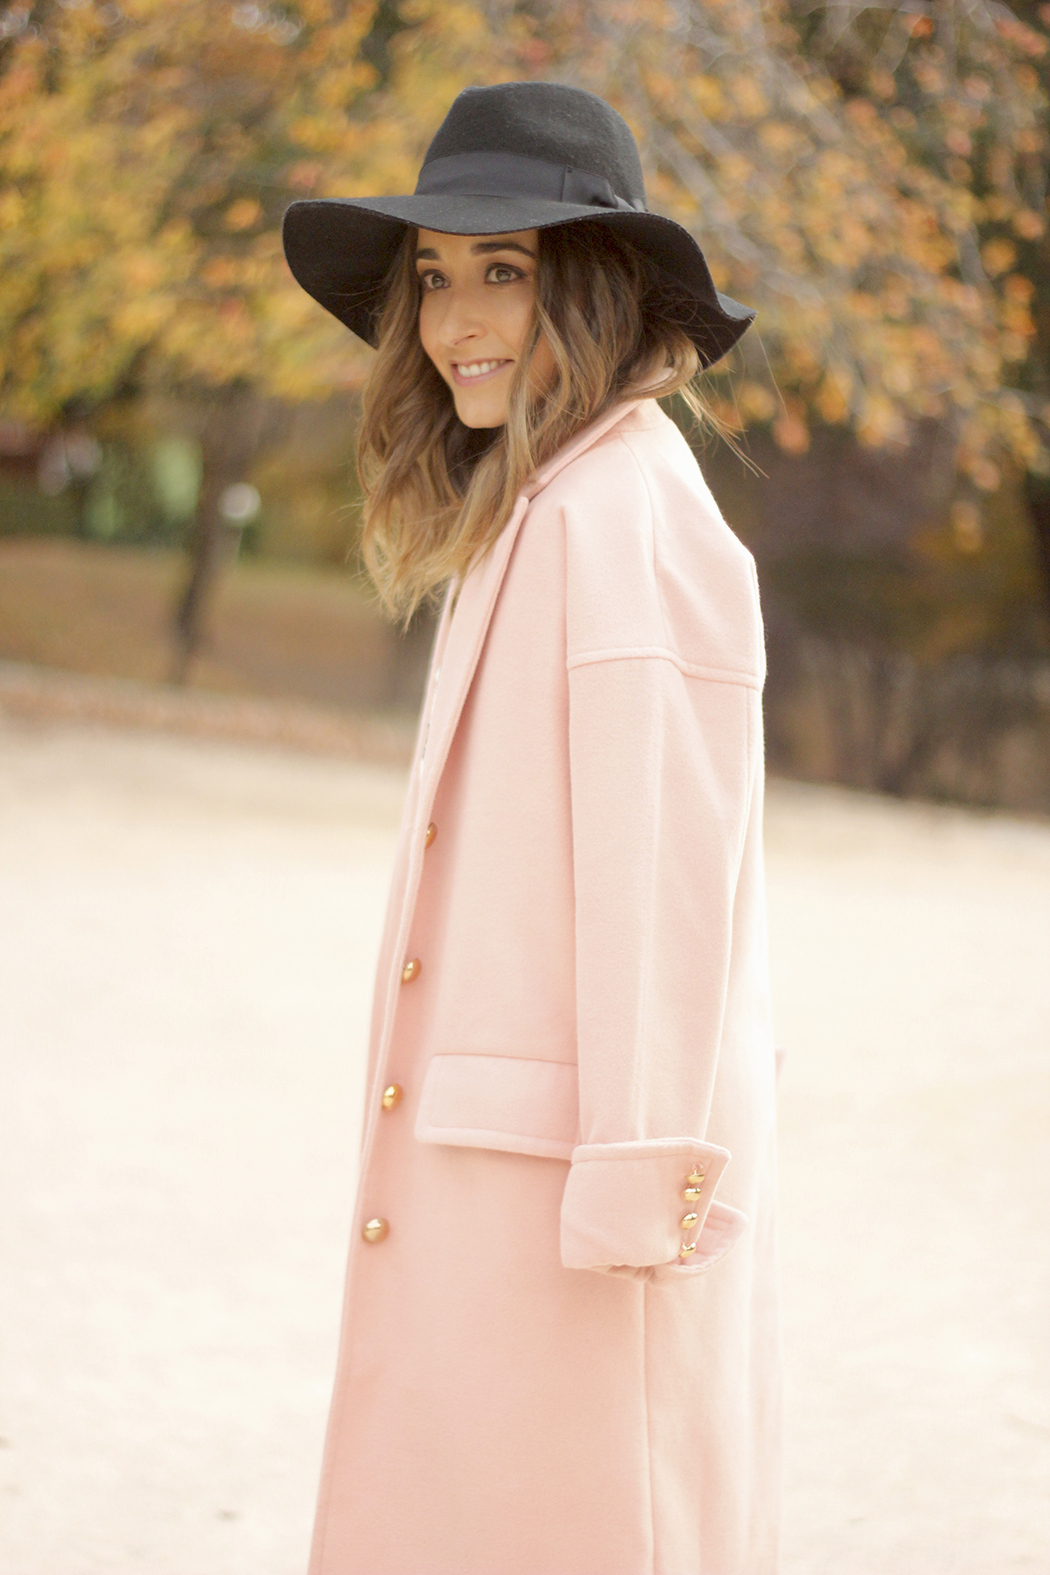 Black and White Dress Pink Coat Black Hat outfit style over the knees boots13